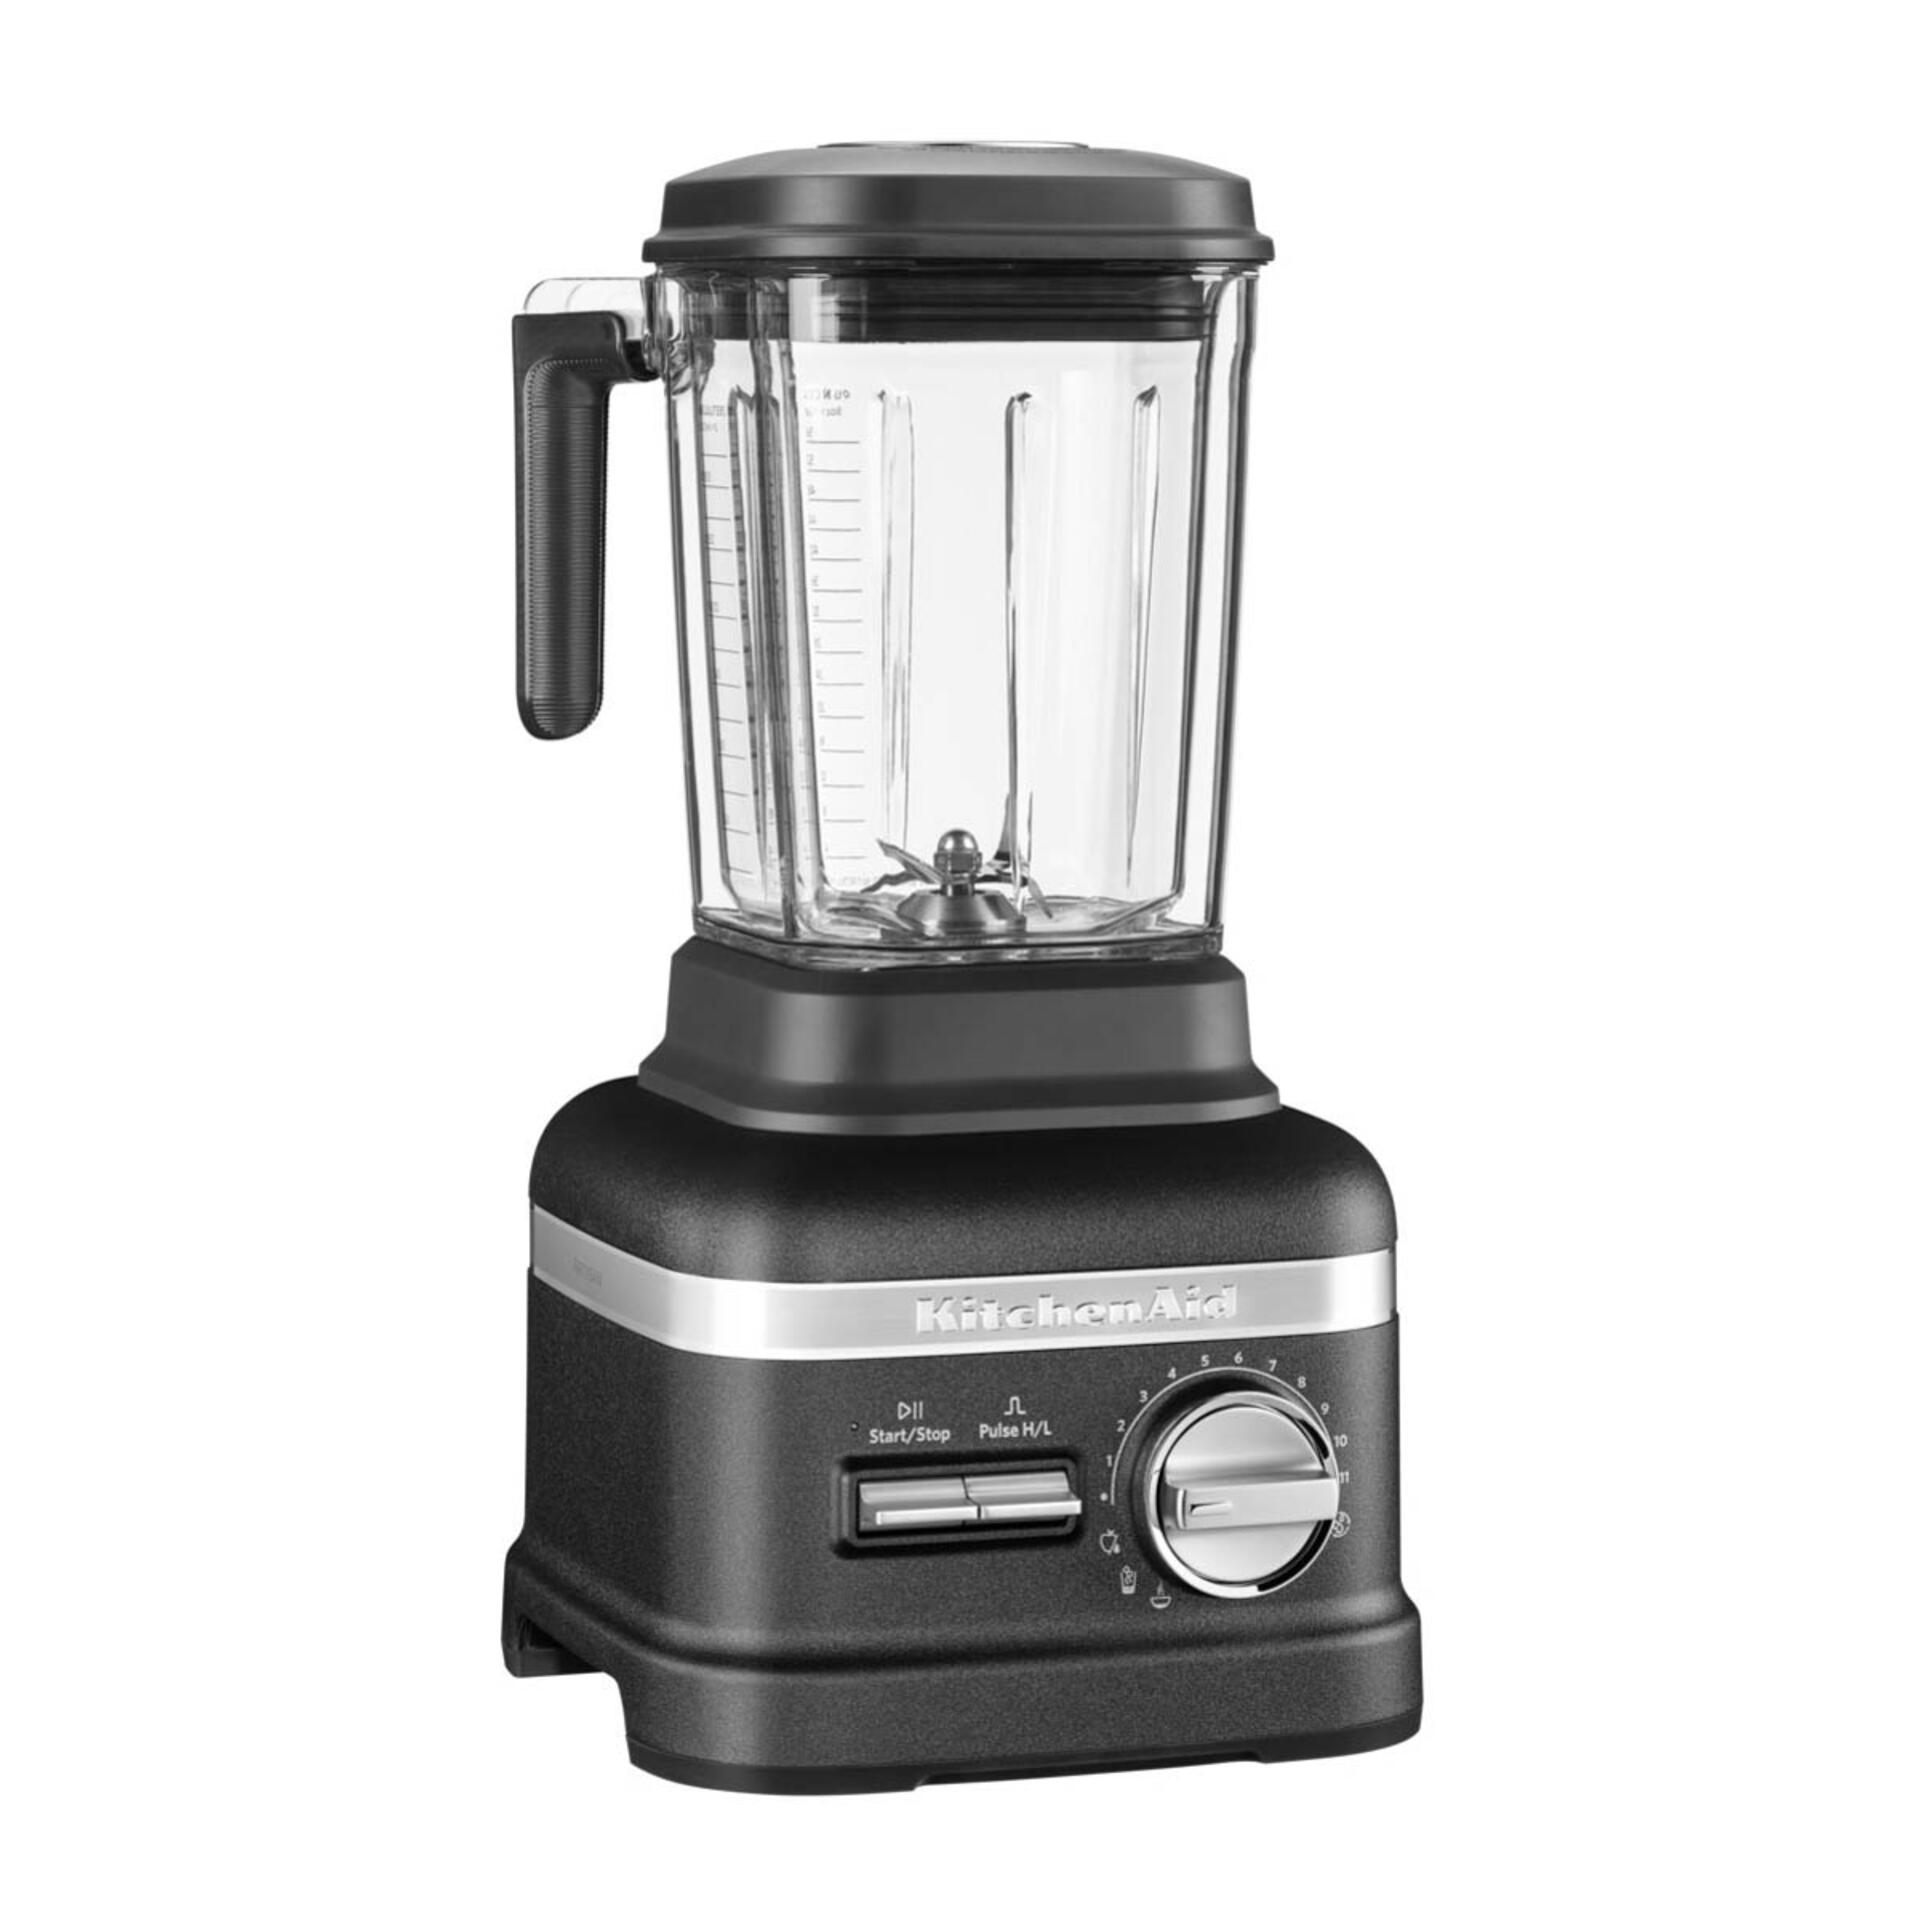 Kitchenaid Artisan Power Plus Blender Standmixer 5KSB8270 Gusseisen Schwarz